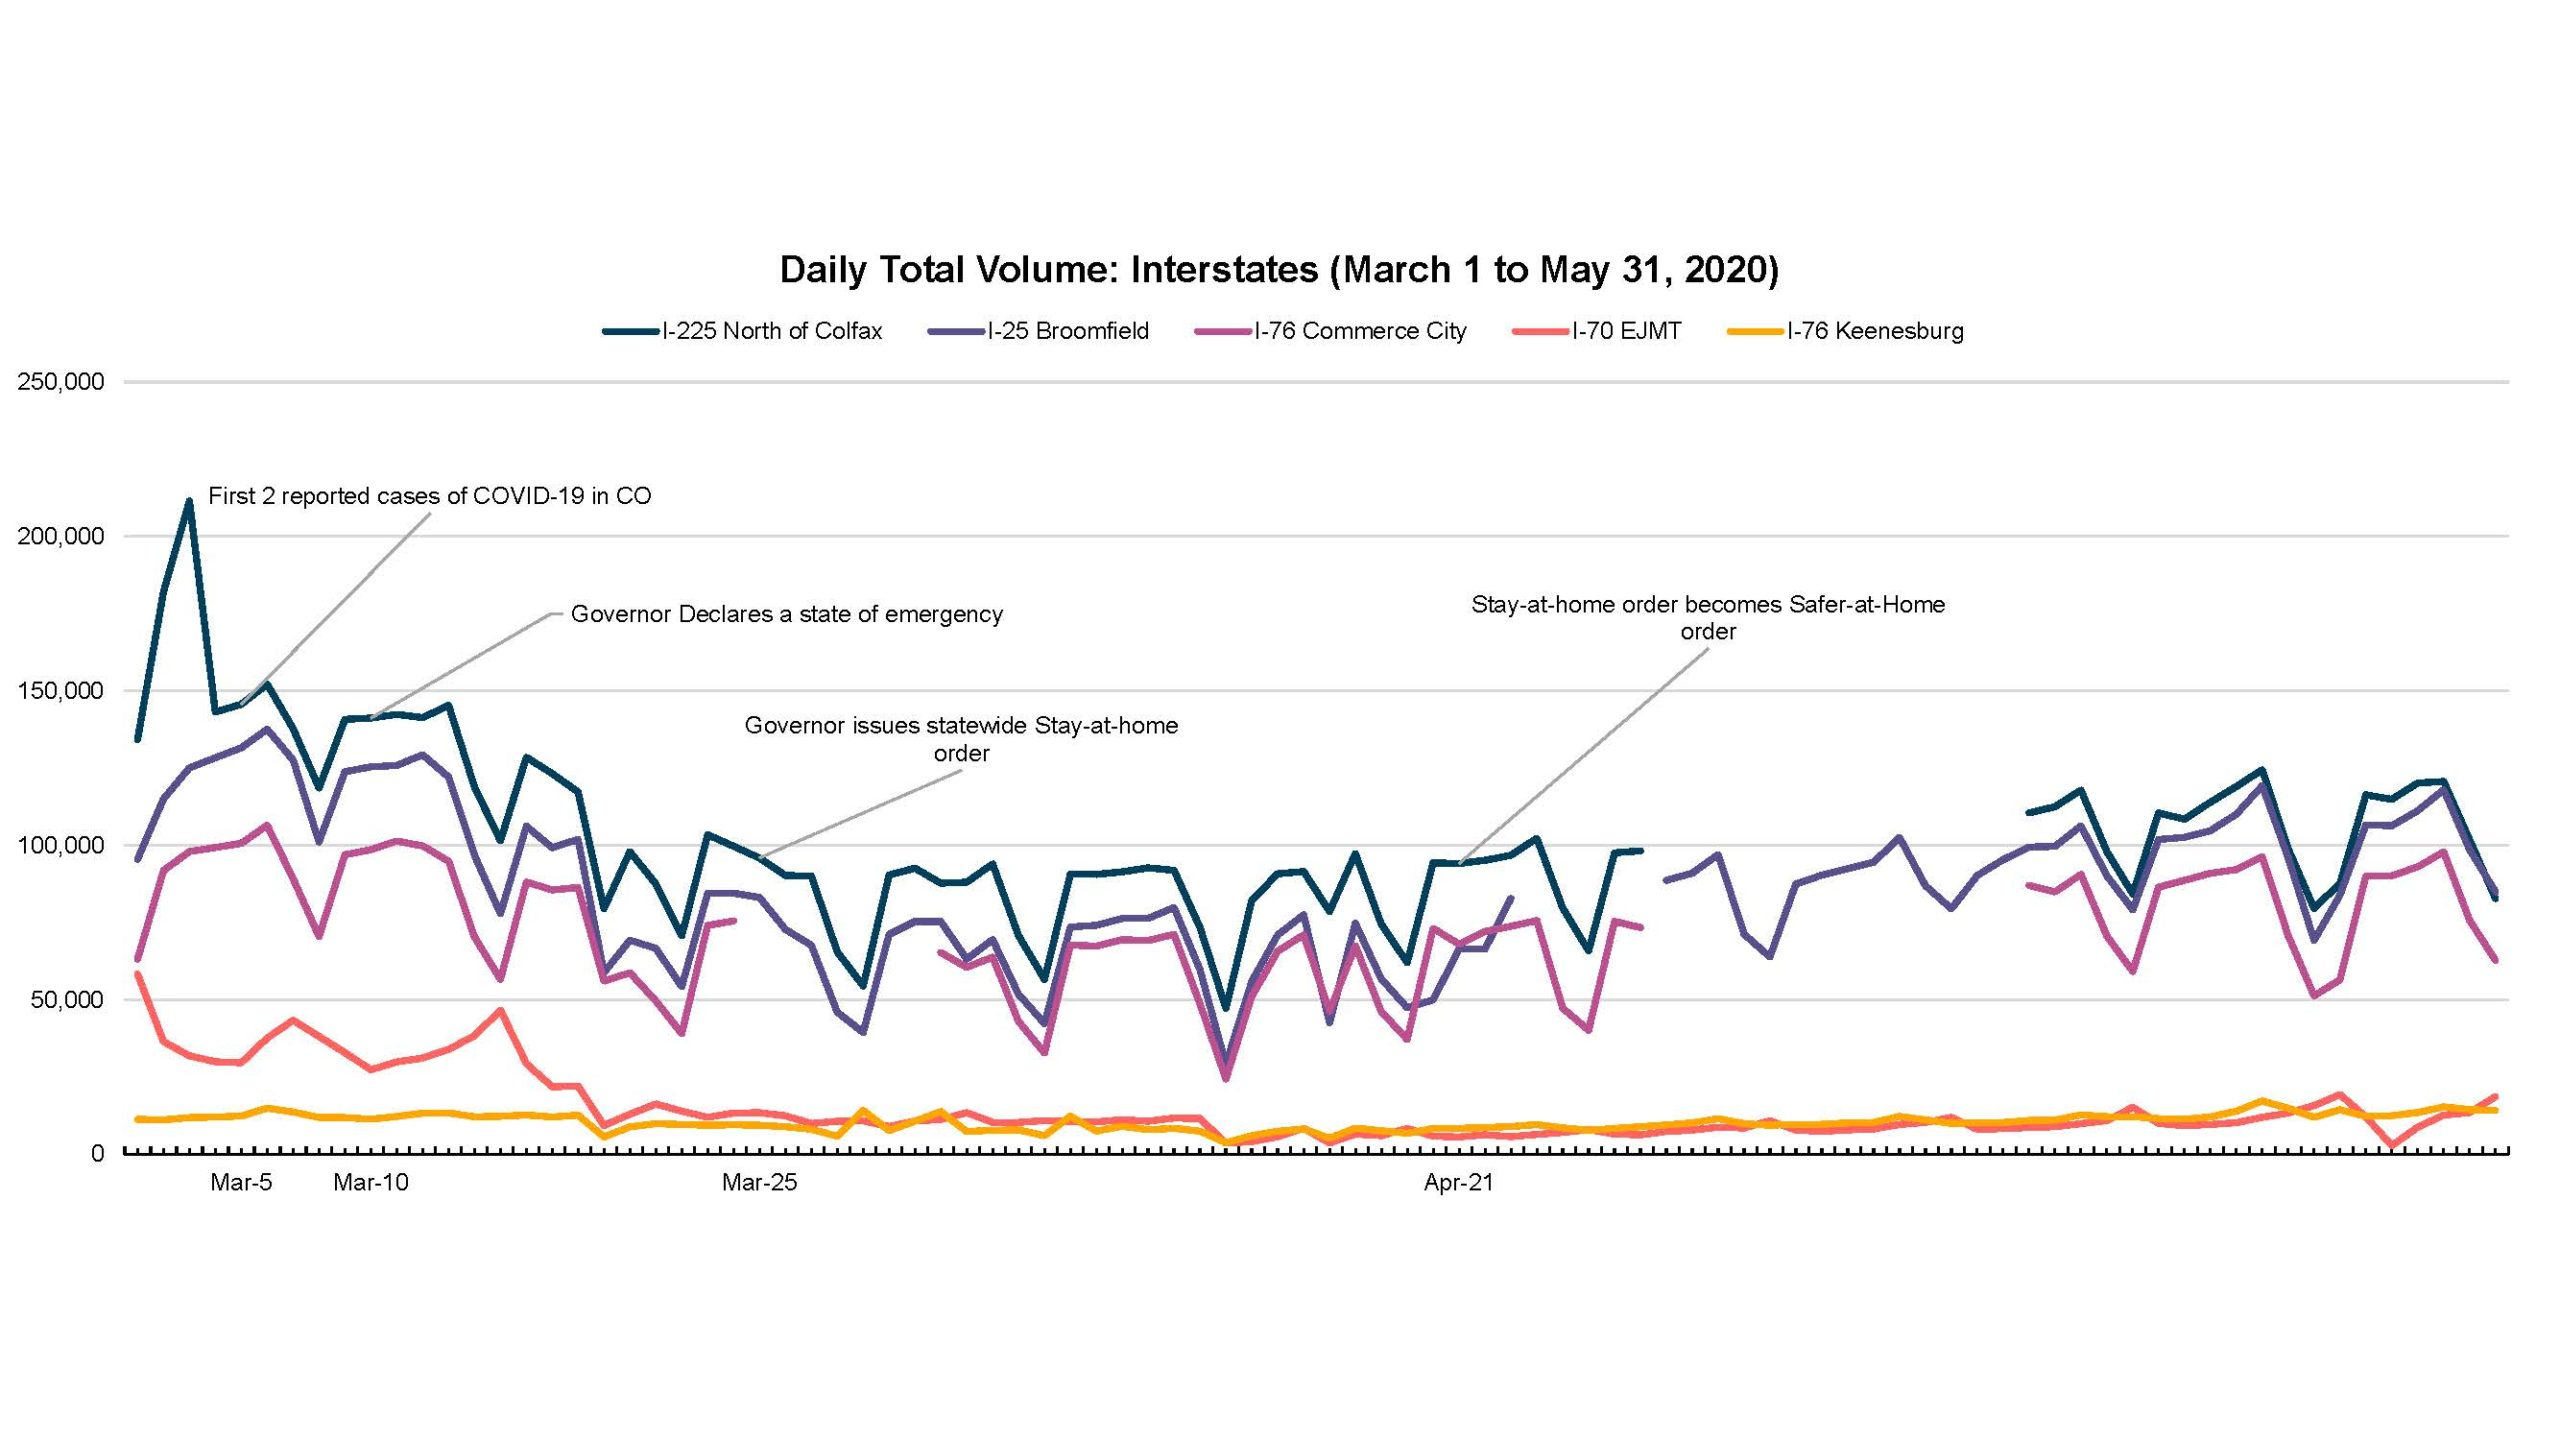 Daily Total Traffic Volumes